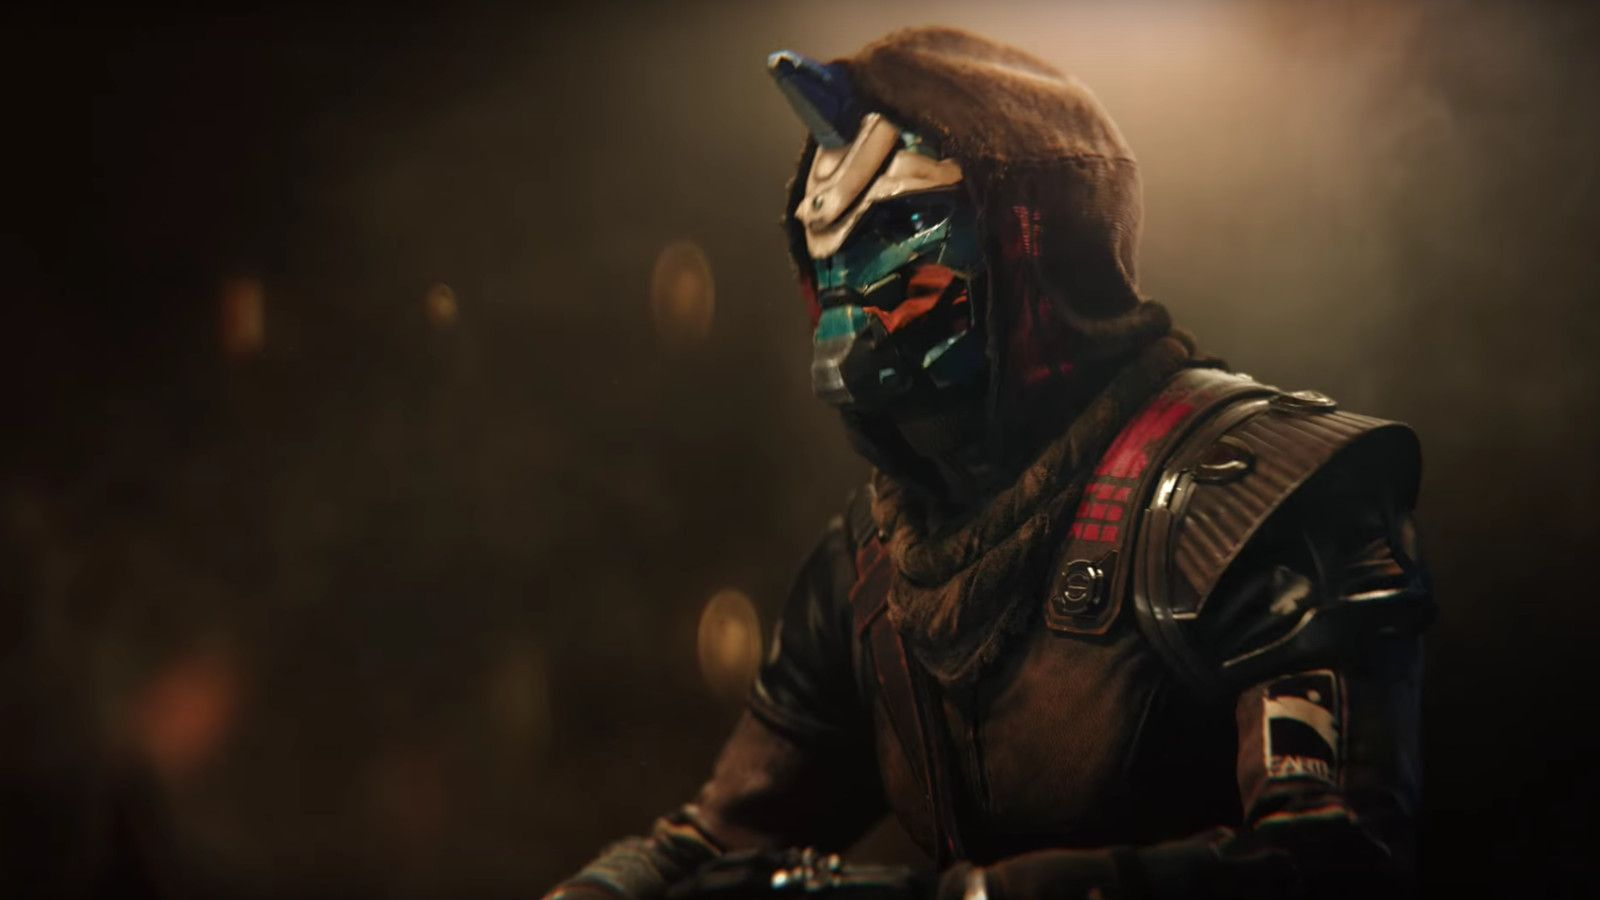 Cayde 6 Wallpaper Free Wallpaper Wallpaper Free Download Laptop Wallpaper